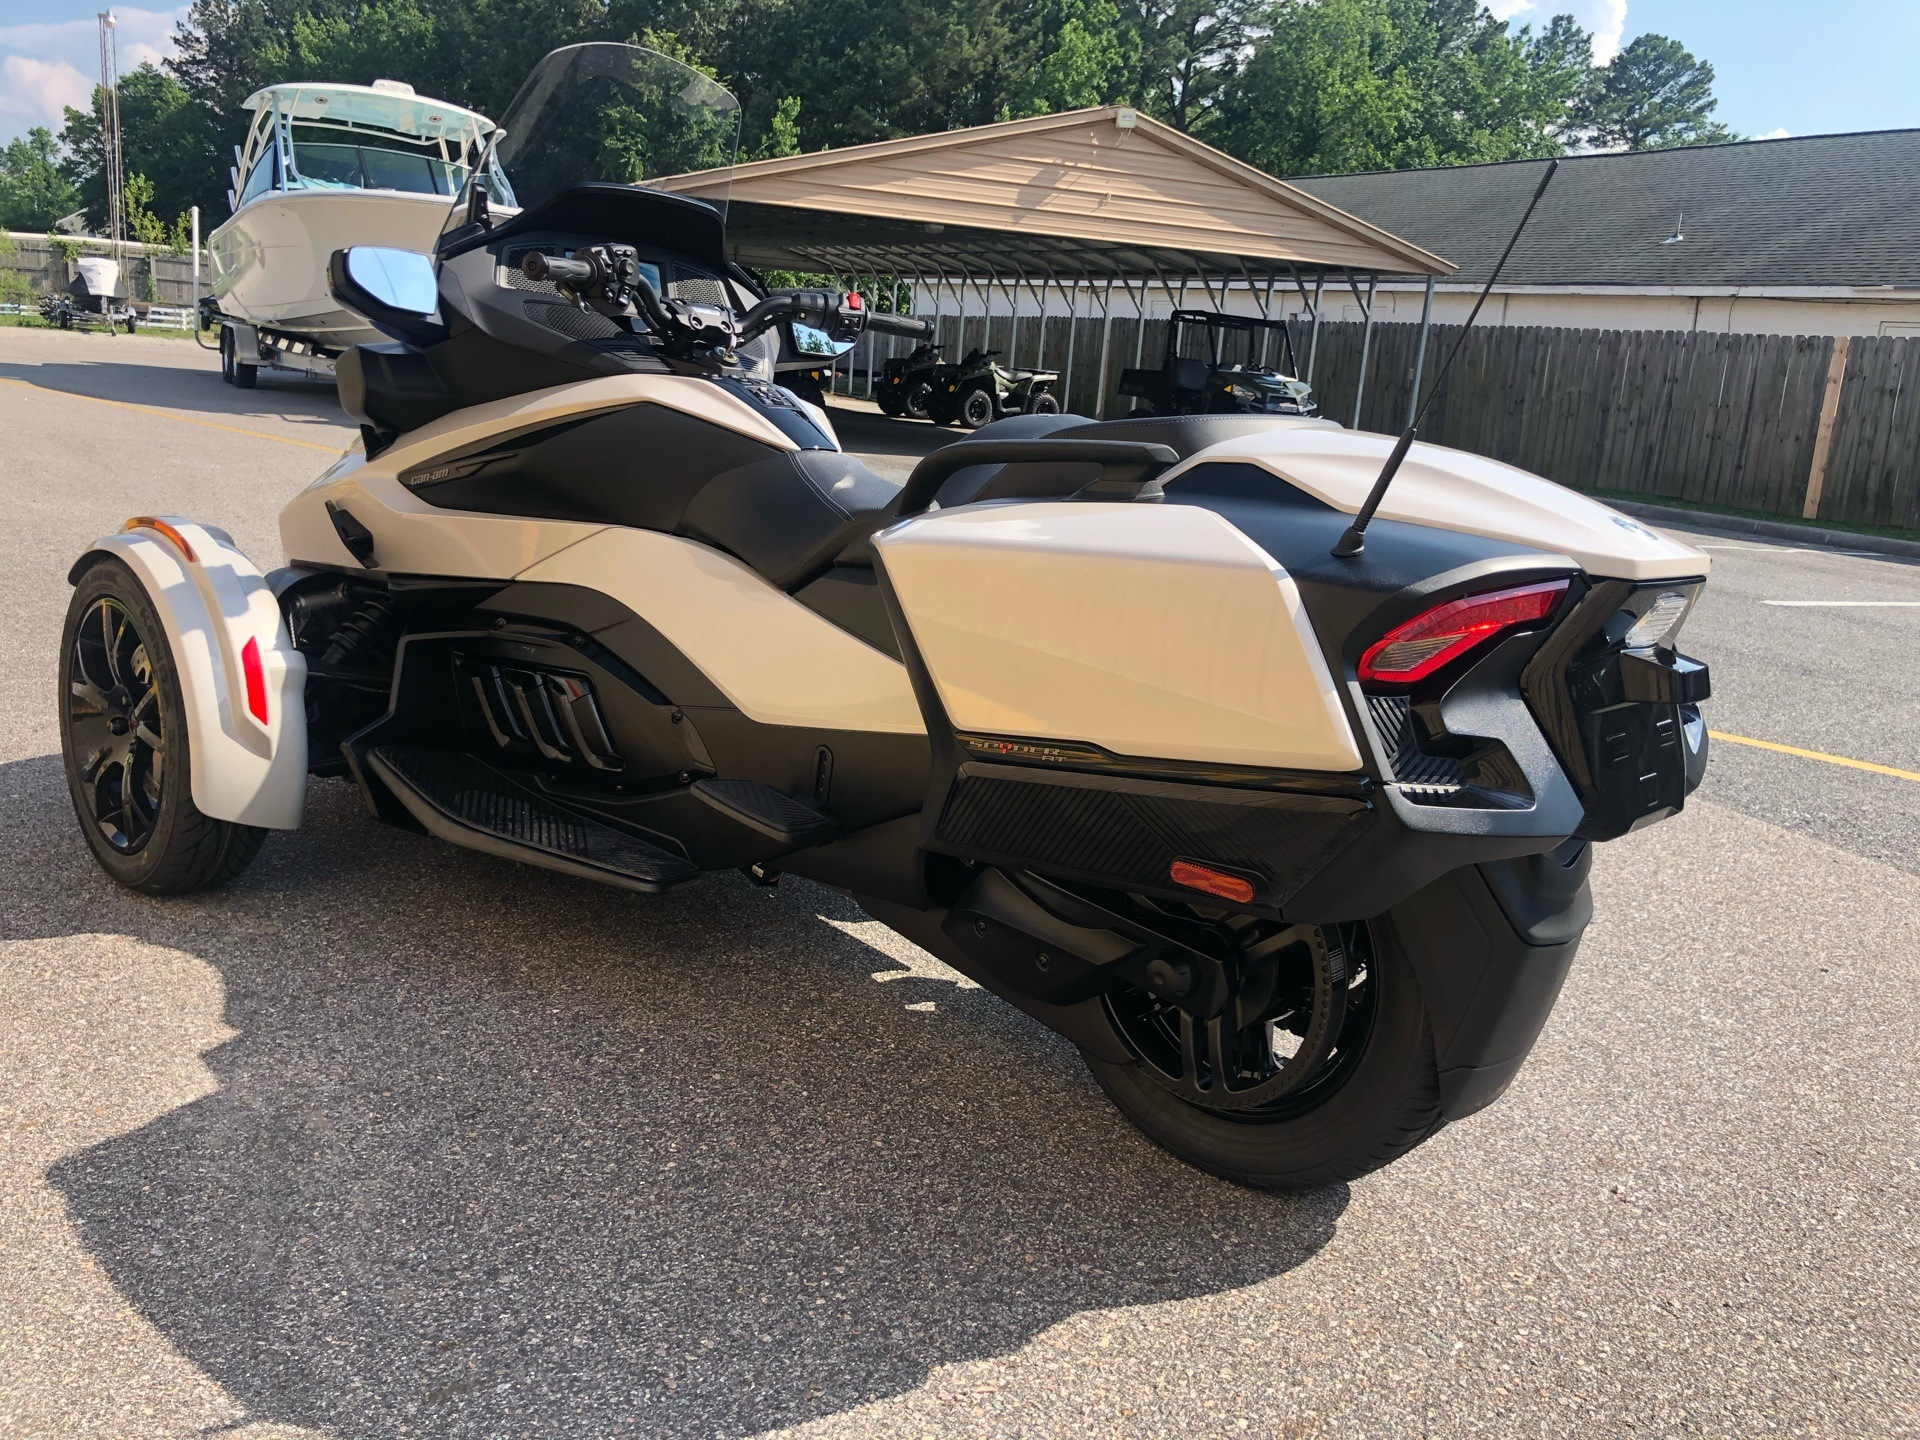 2020 Can-Am Spyder RT in Chesapeake, Virginia - Photo 7